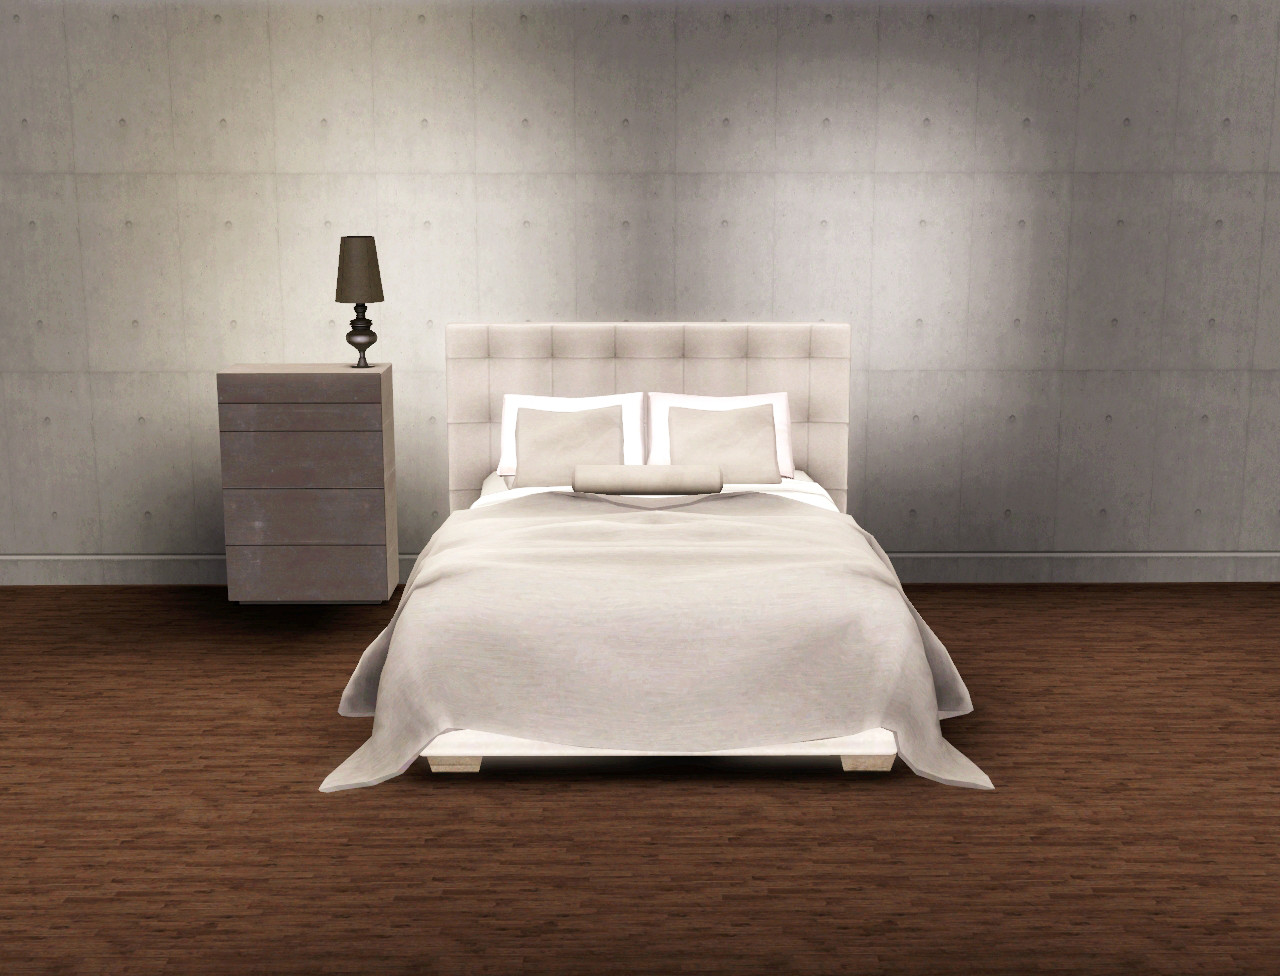 My Sims 3 Blog Paris Quadro Bedroom Set by Esatto Design